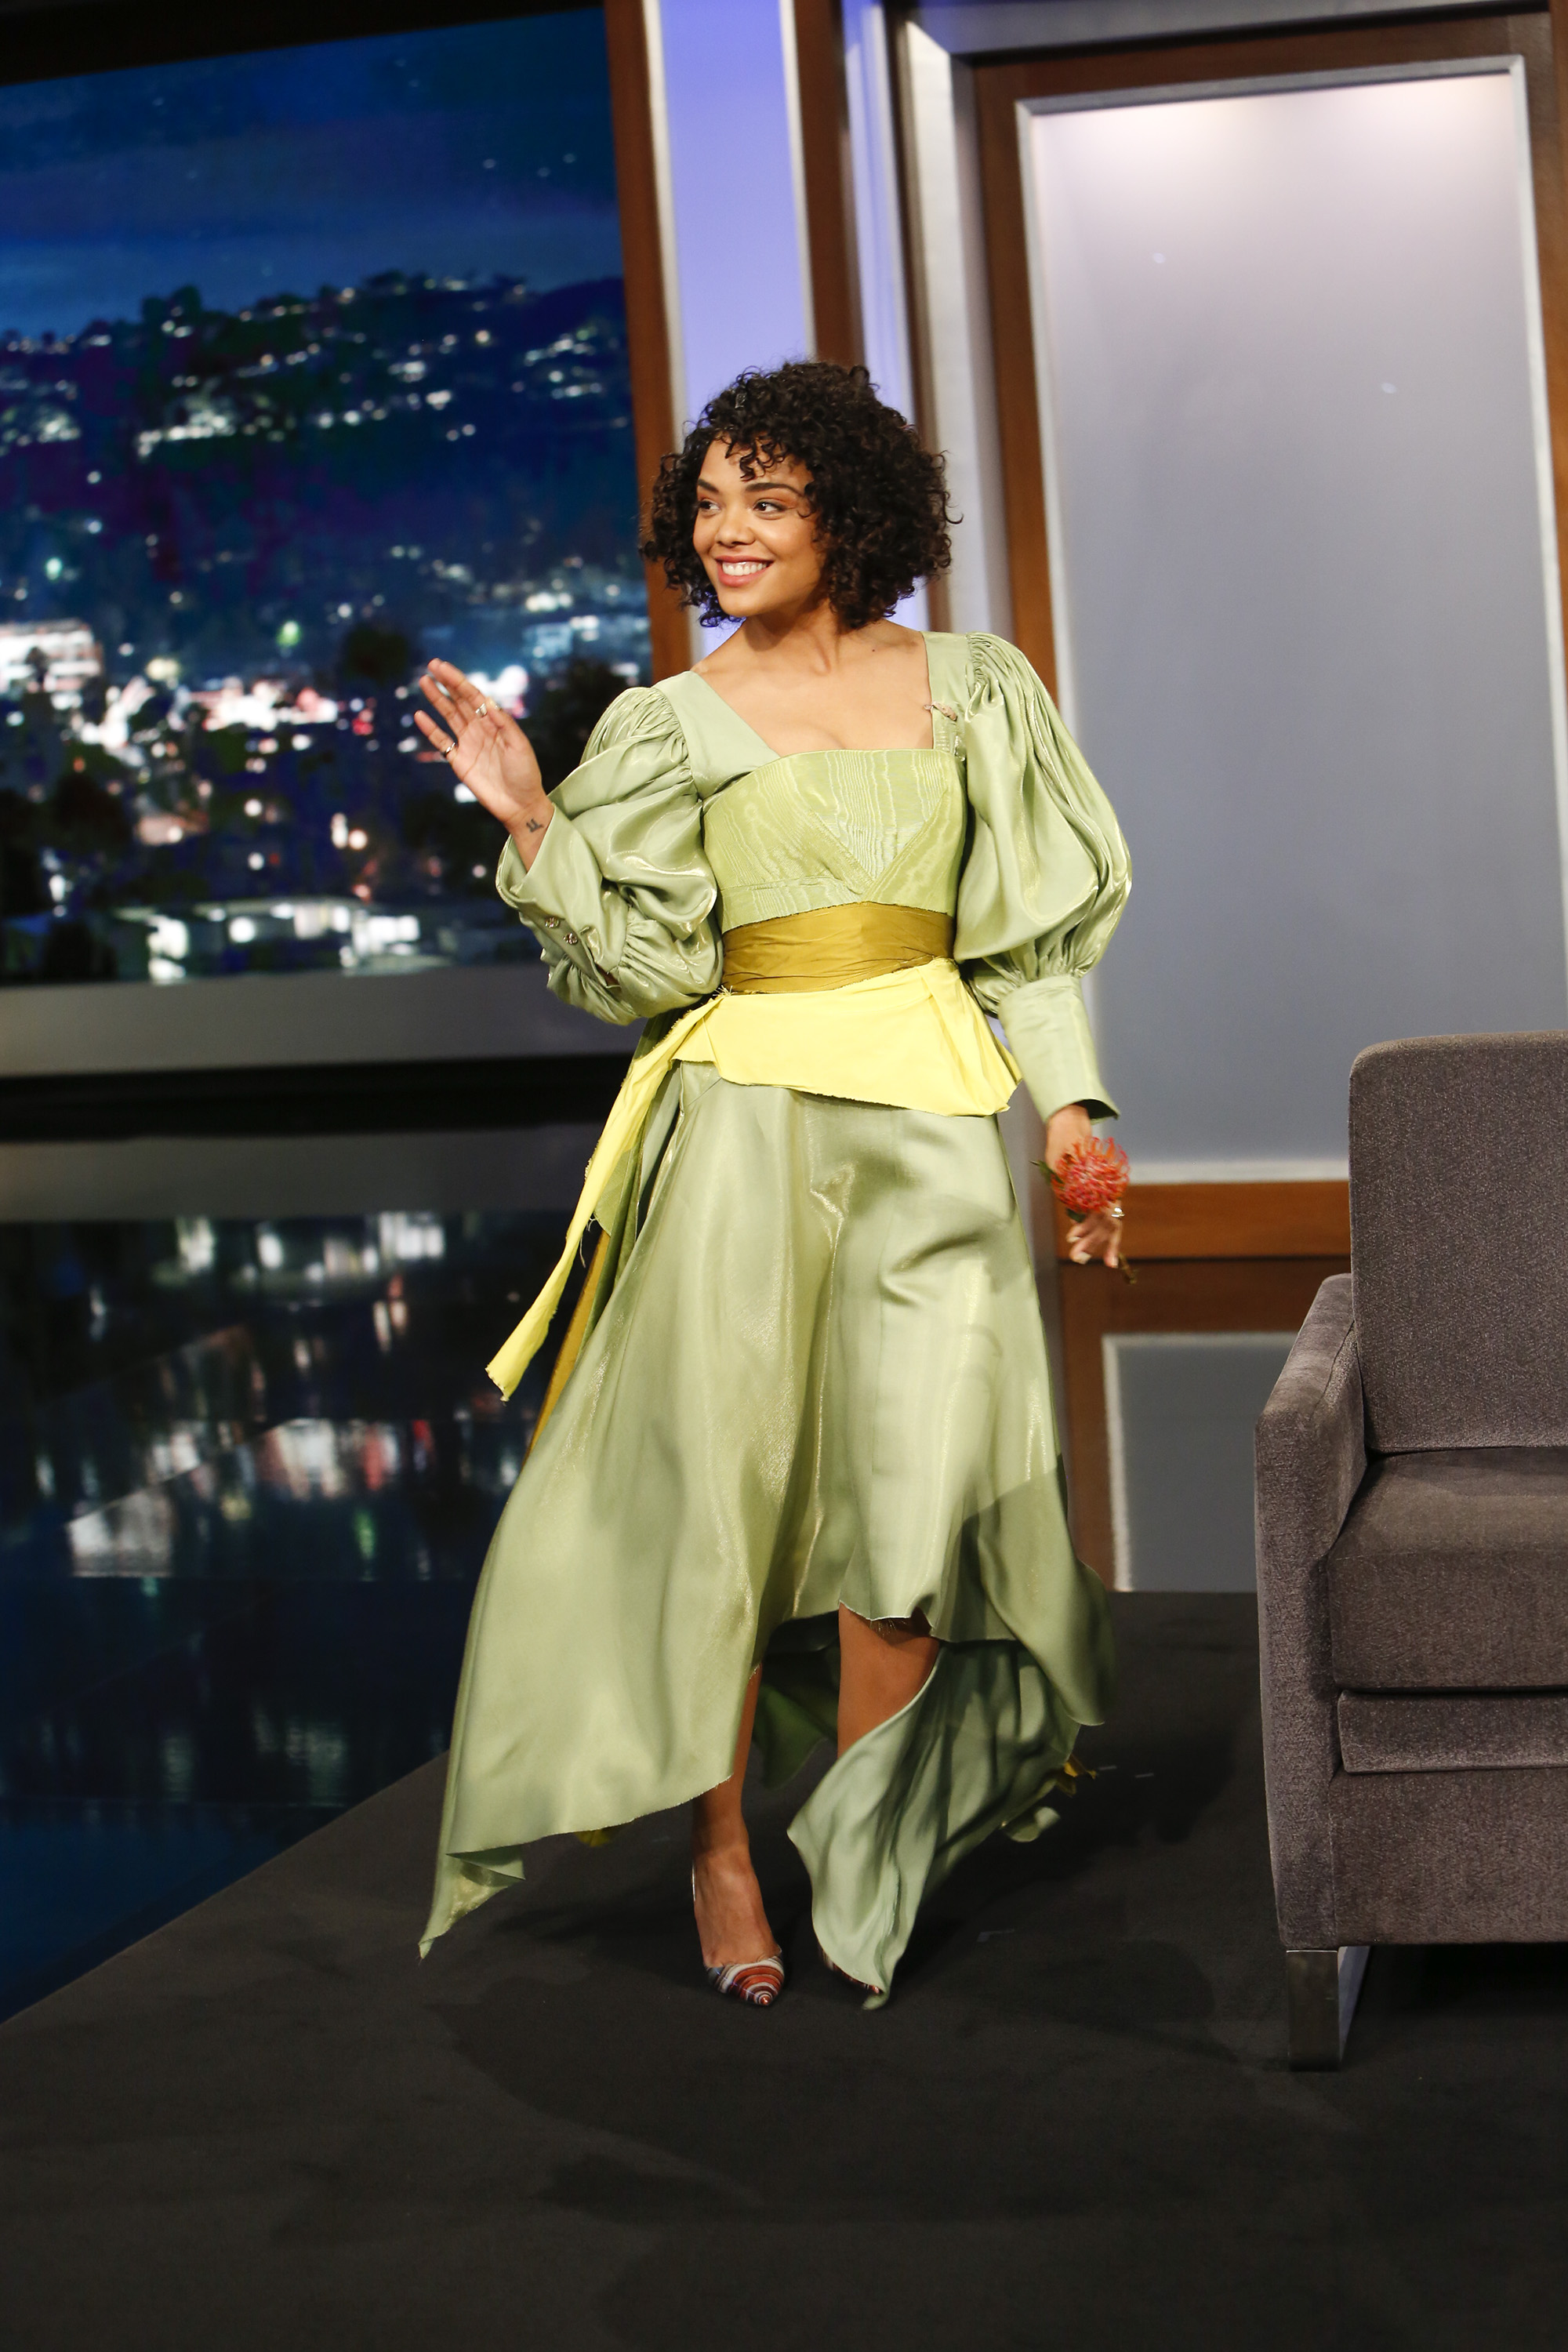 In Case You Missed It: Tessa Thompson On Jimmy Kimmel Live